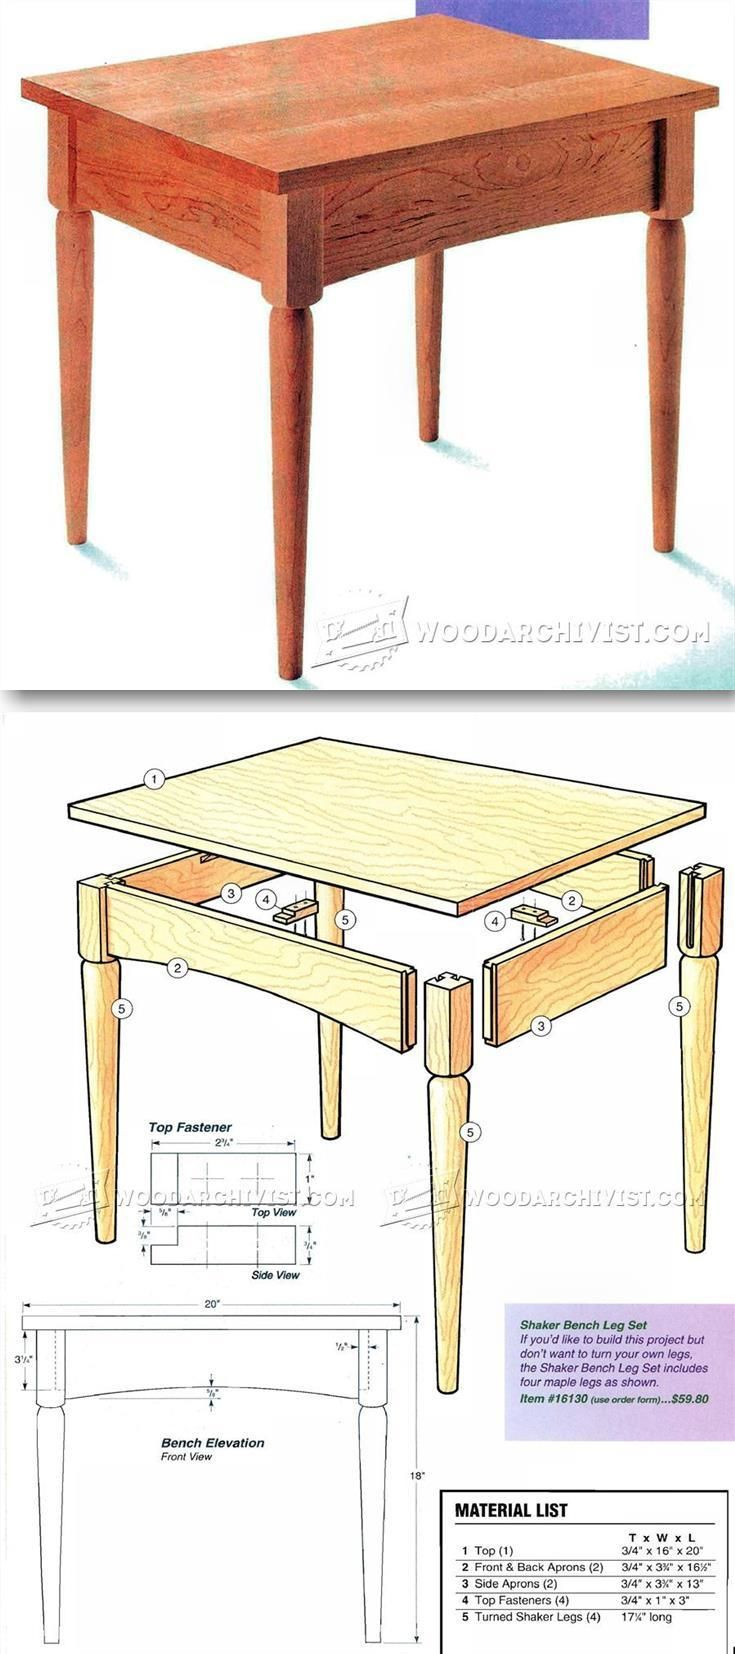 Attractive Shaker Bench Plans   Furniture Plans And Projects | WoodArchivist.com